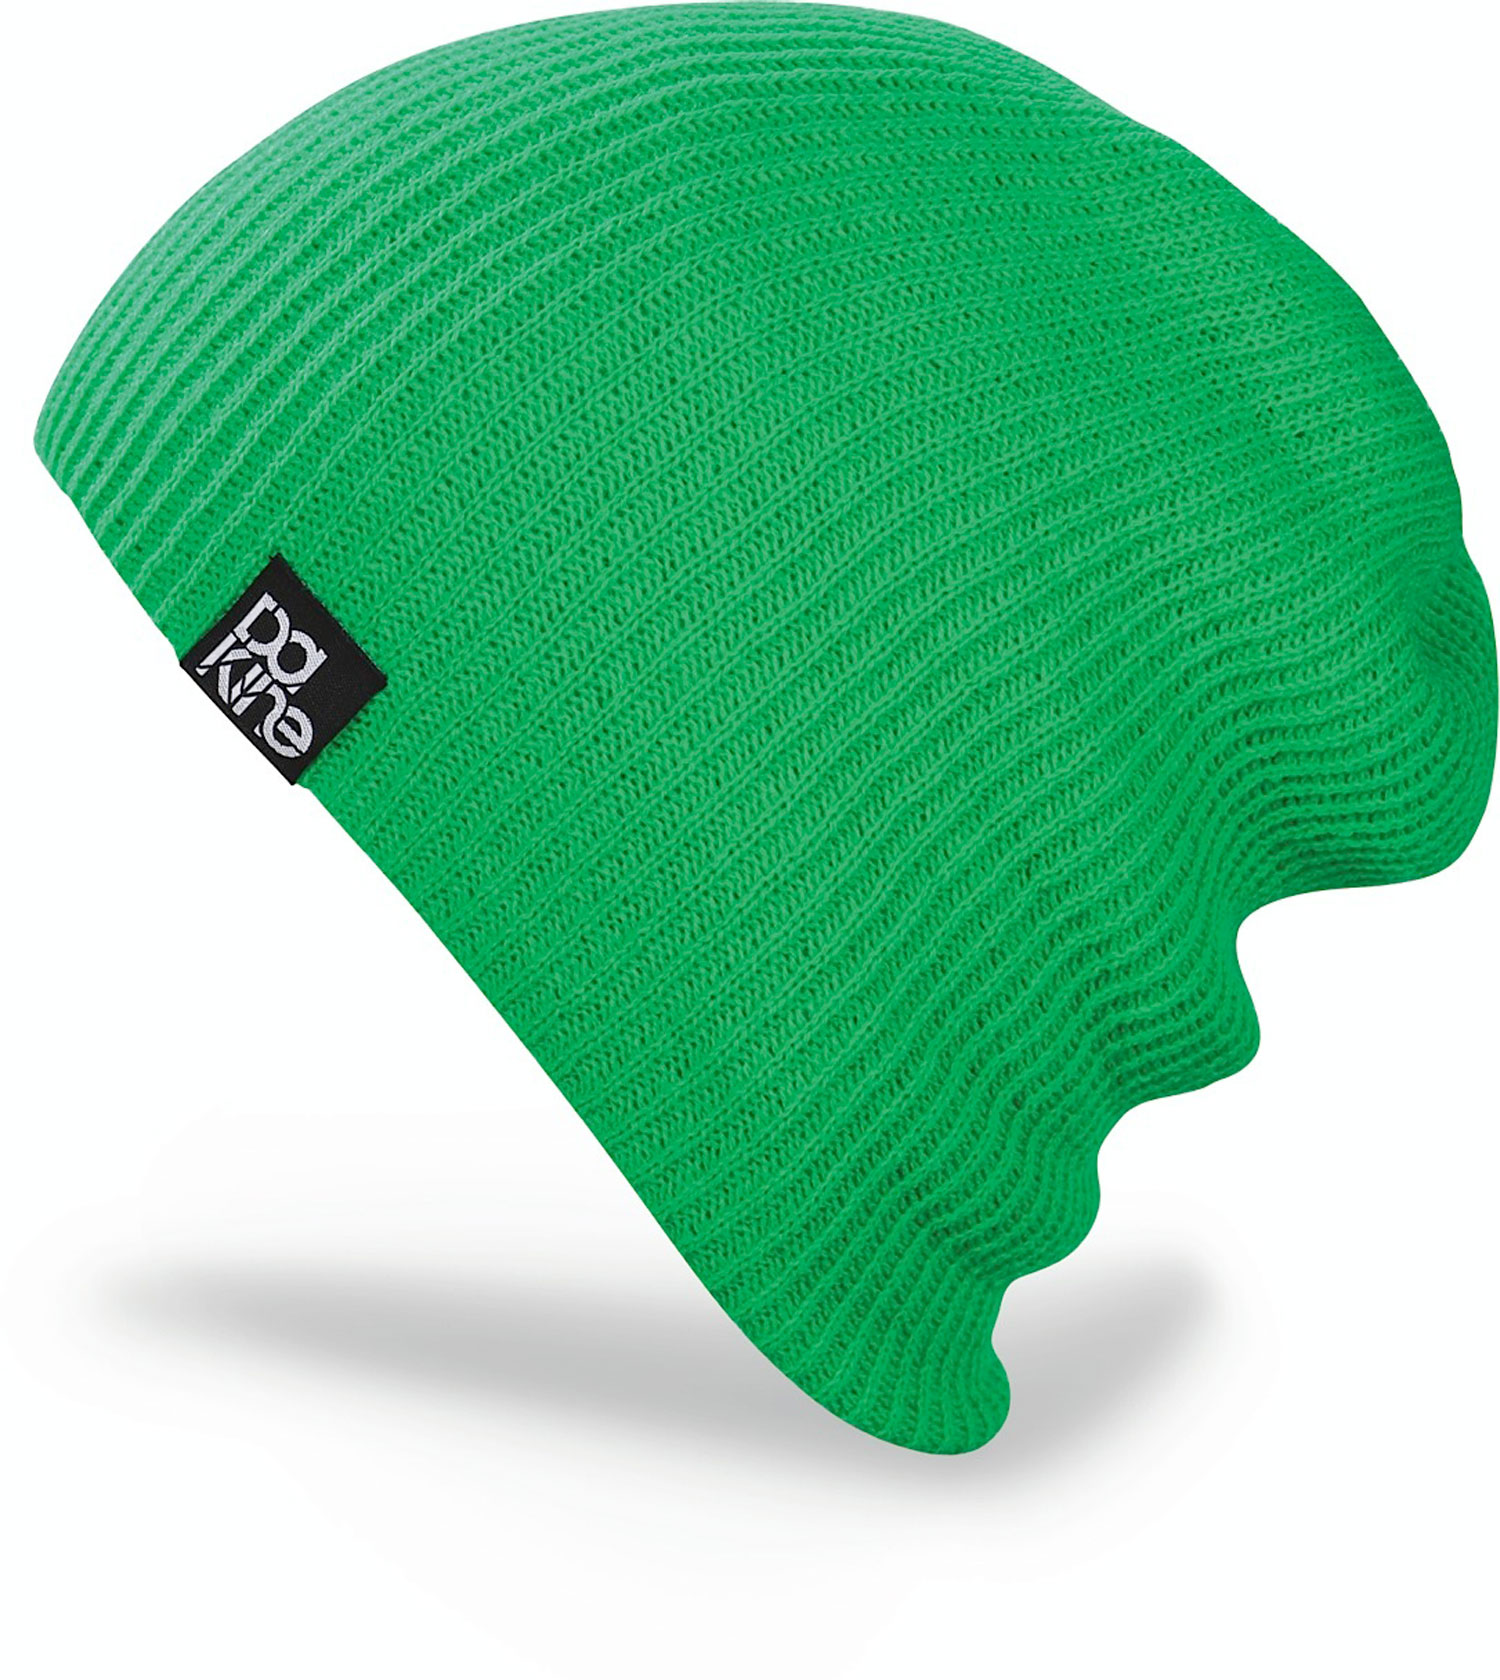 Snowboard This beanie can be roll it up or pull ot down ether way your going to look great in hat.Key Features of the Dakine Tall Boy Beanie: acrylic ribbed knit Double lined wear slouchy or cuffed - $20.00